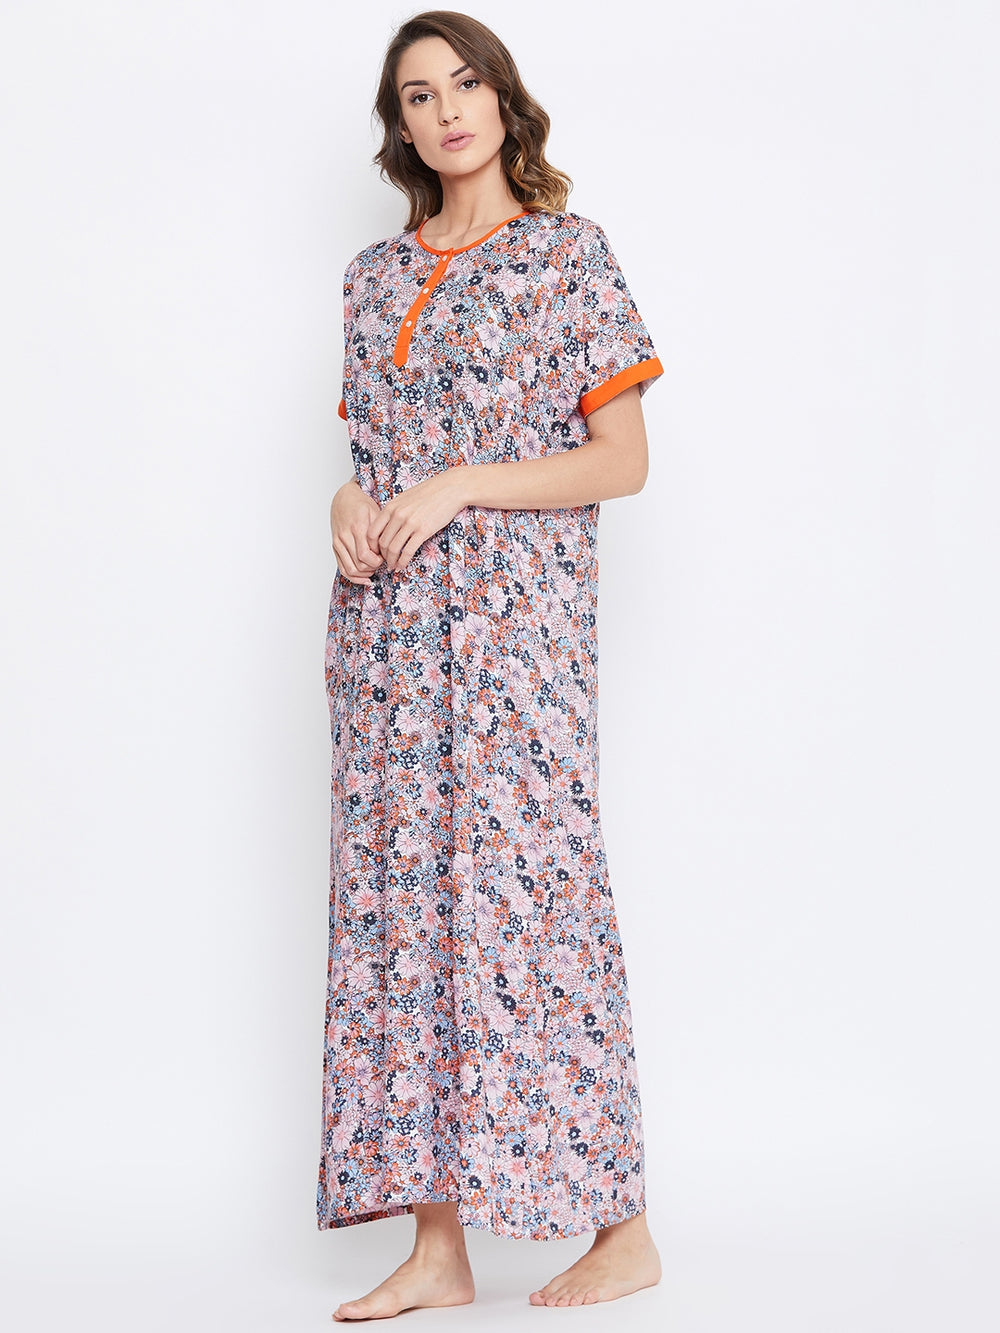 PINK FLORAL COTTON NIGHTDRESS